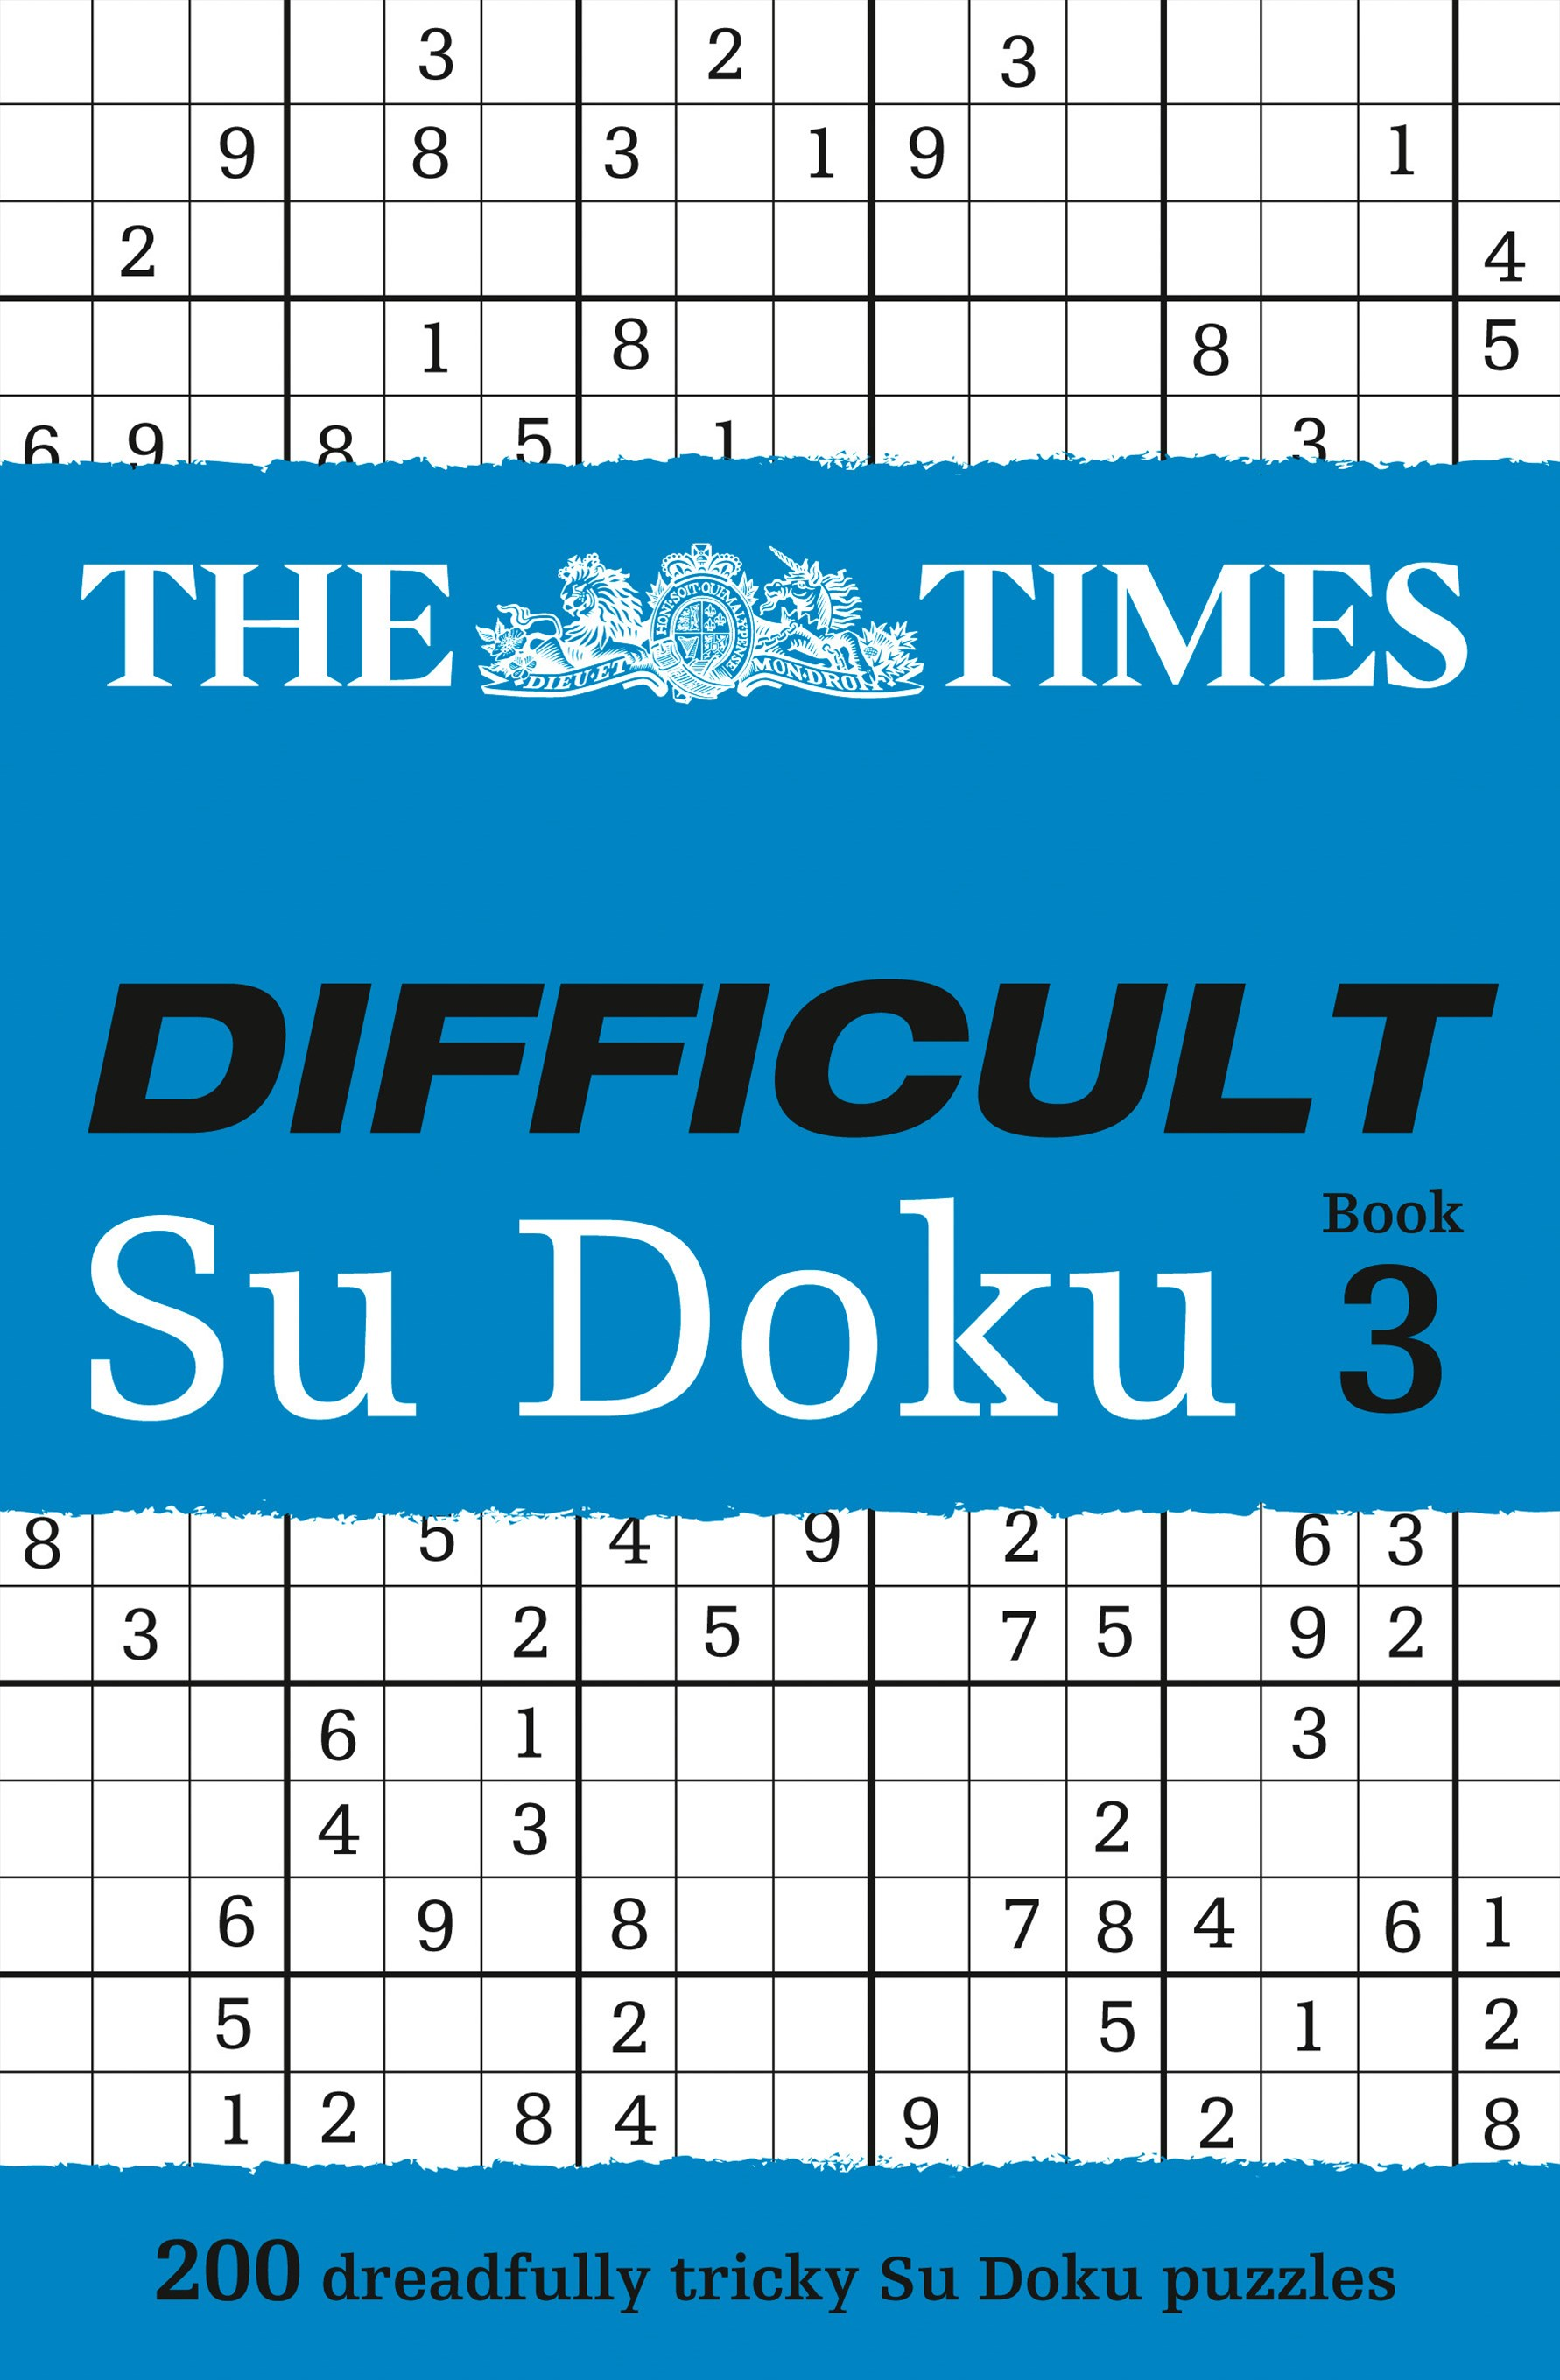 Times Difficult Su Doku Book 3